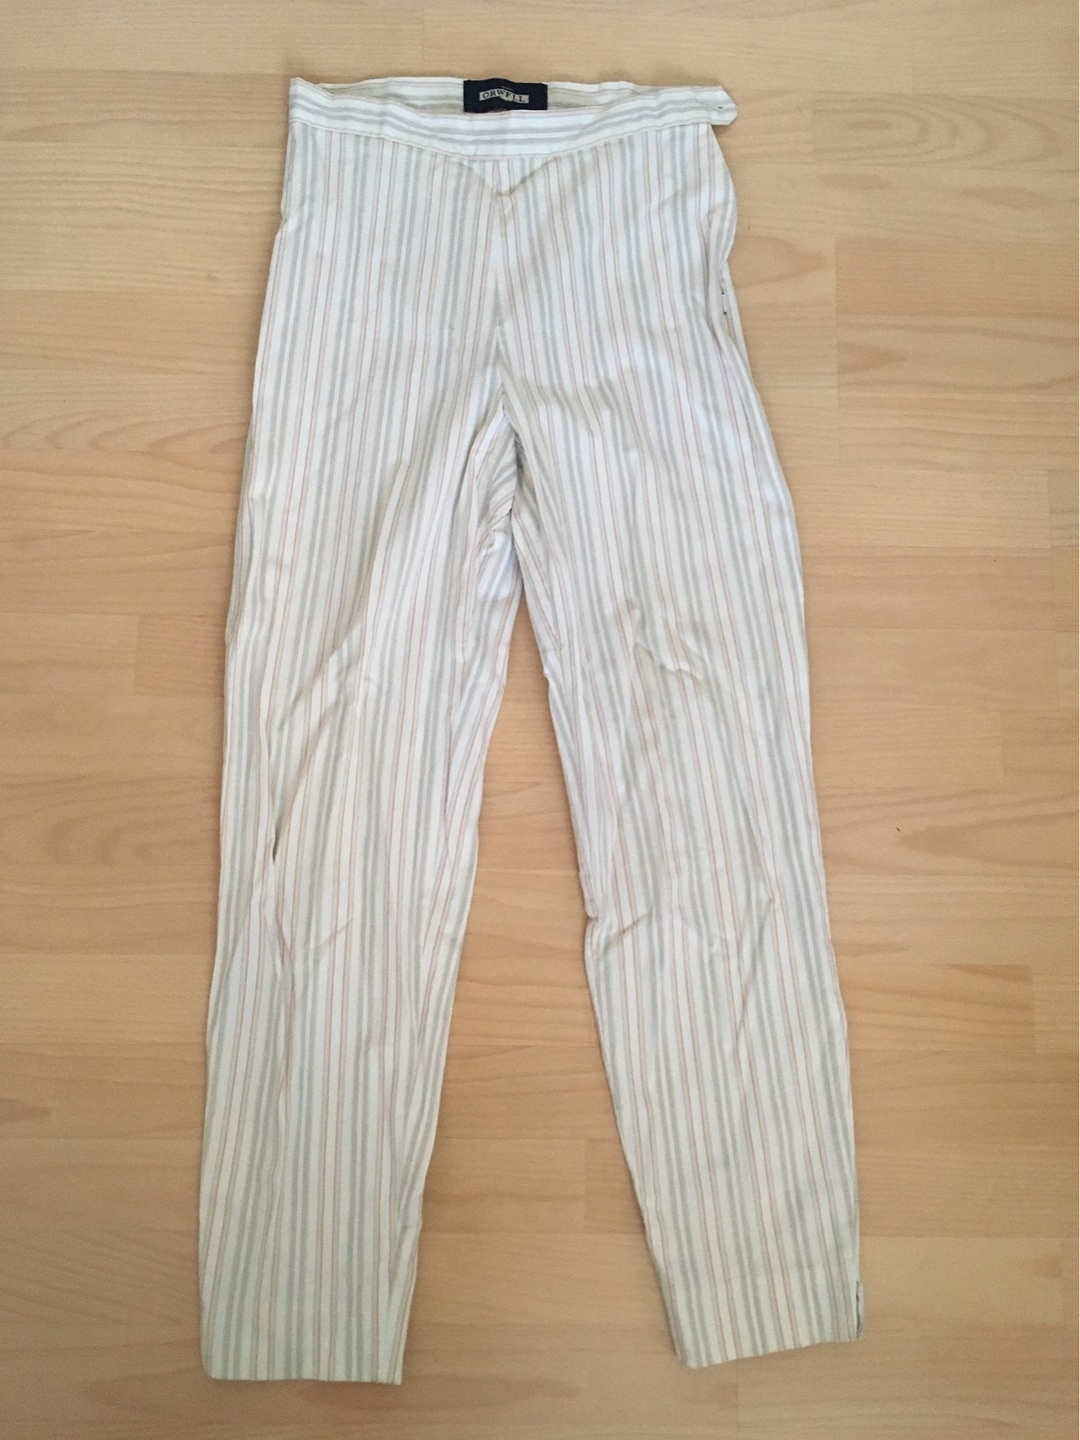 Women's trousers & jeans - ORWELL photo 1